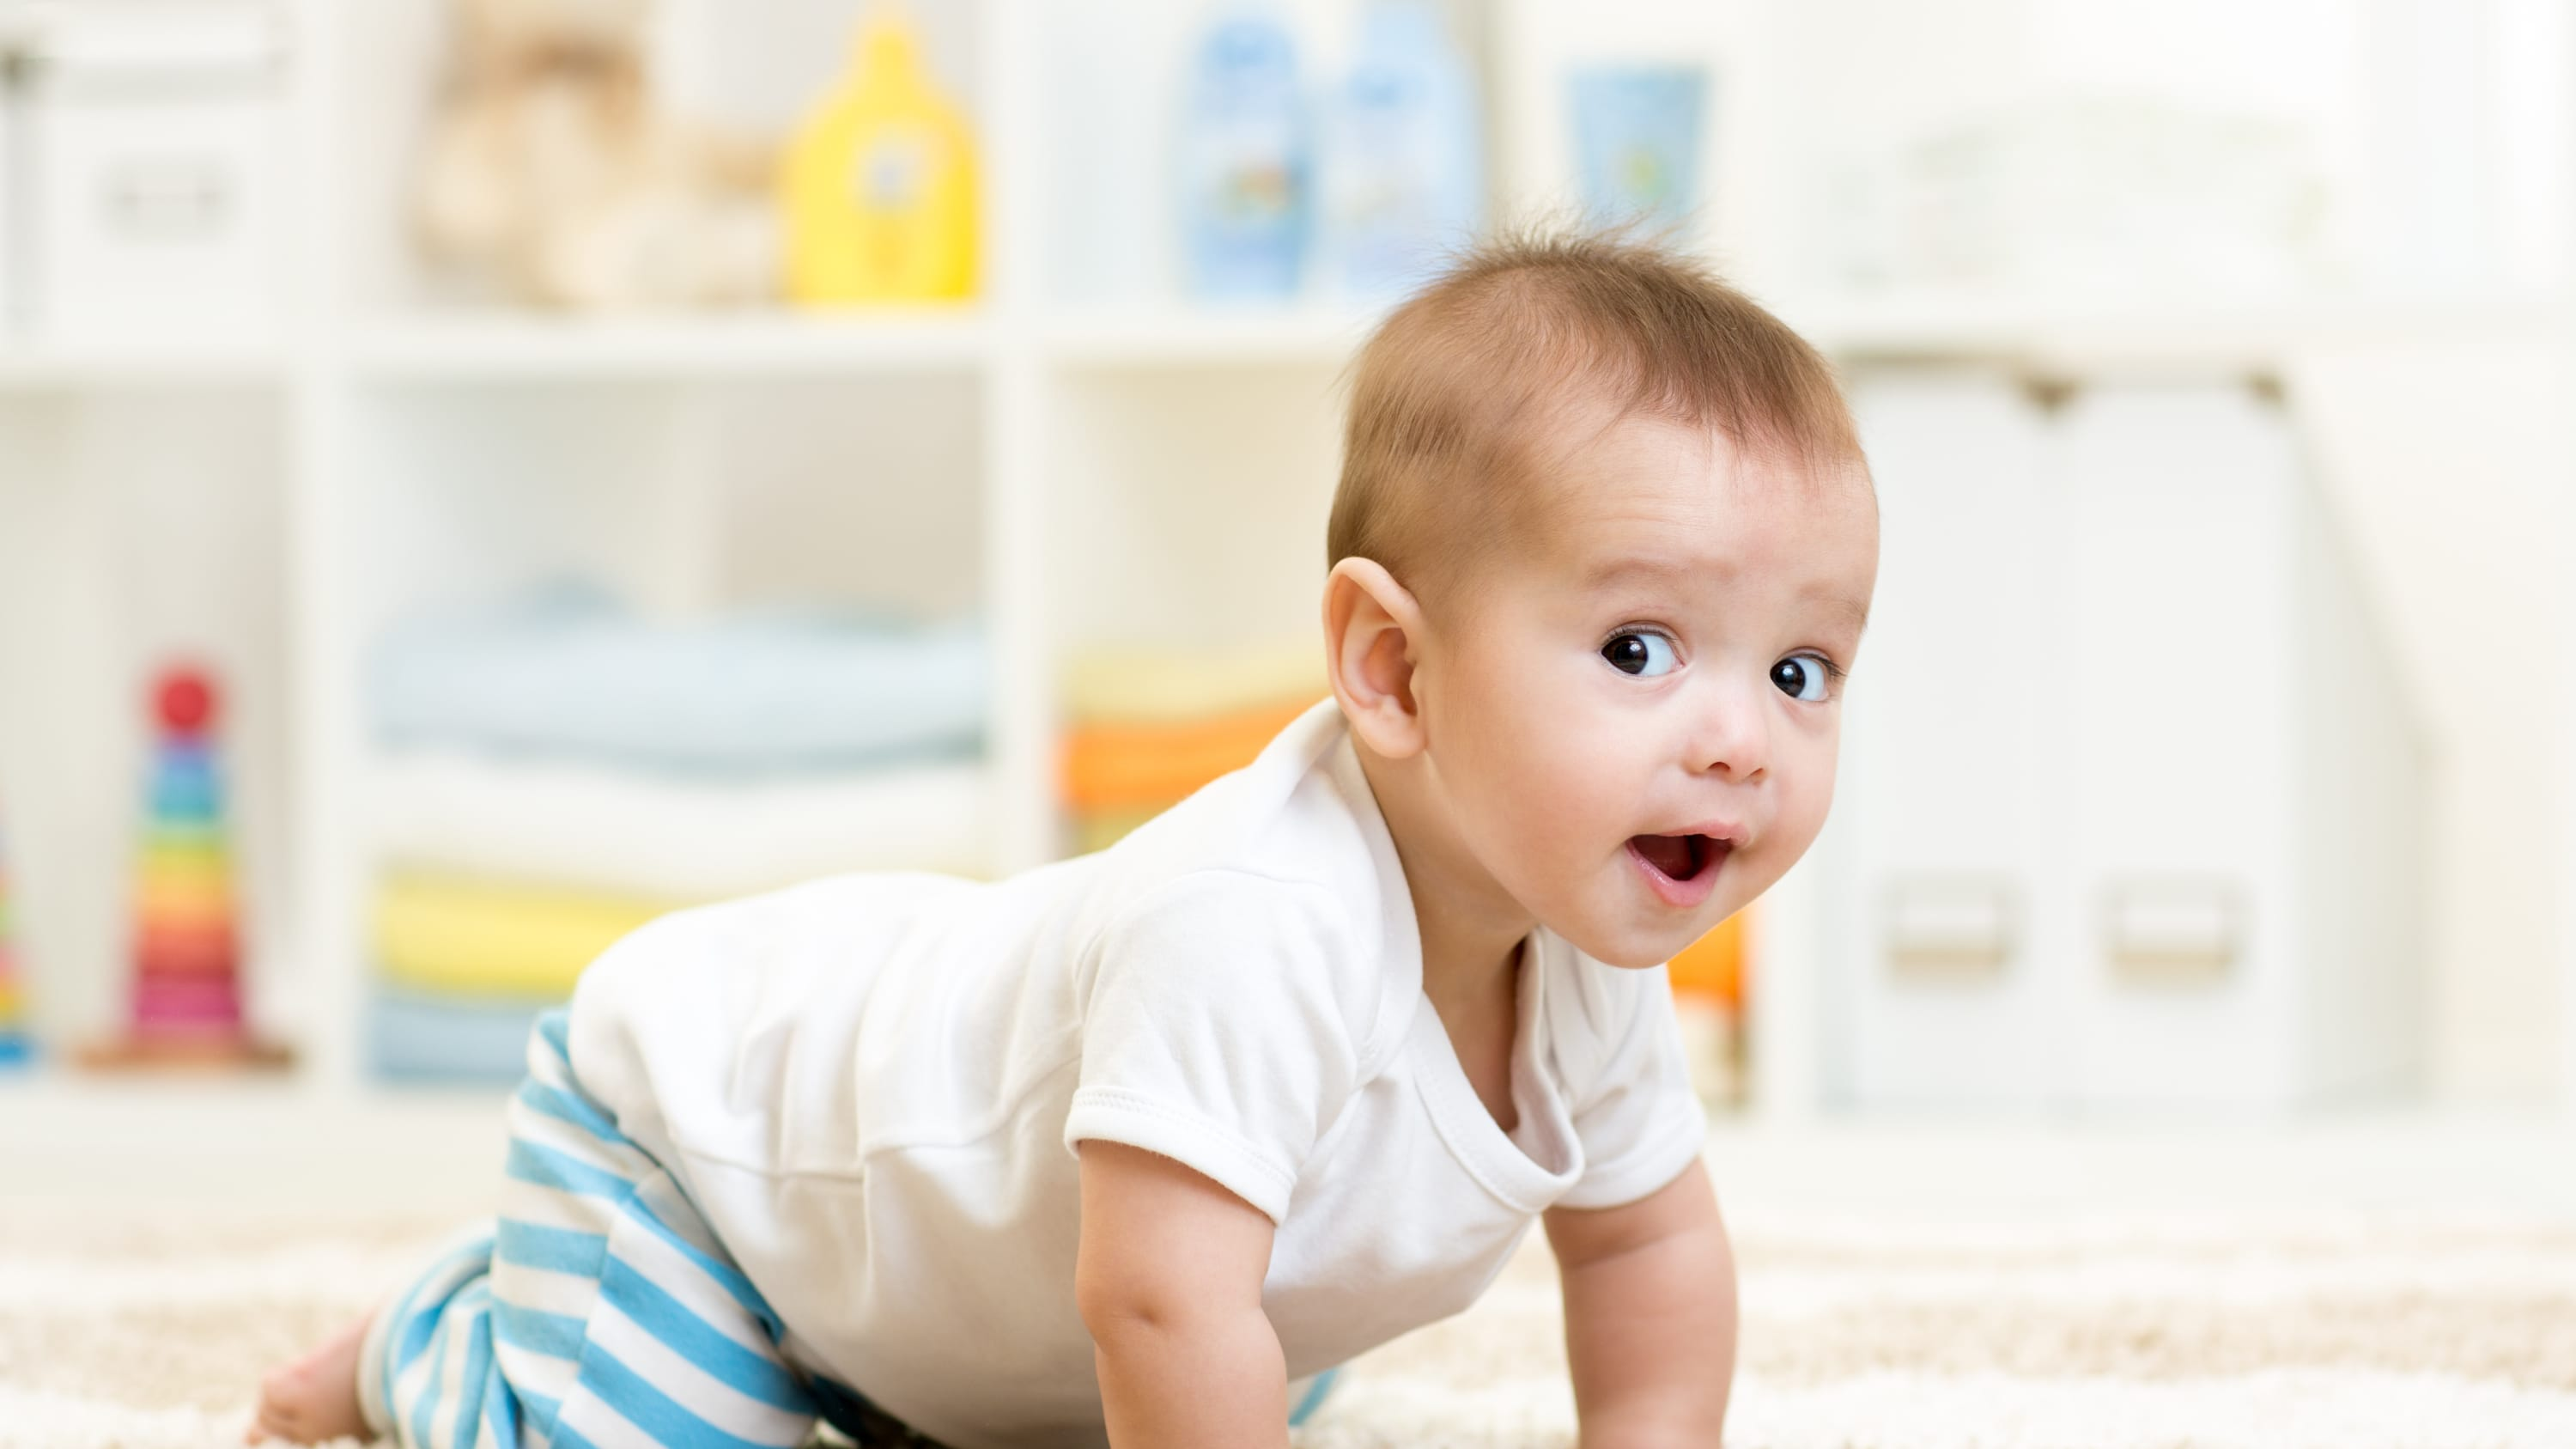 An infant who may have child development issues crawls on the floor.